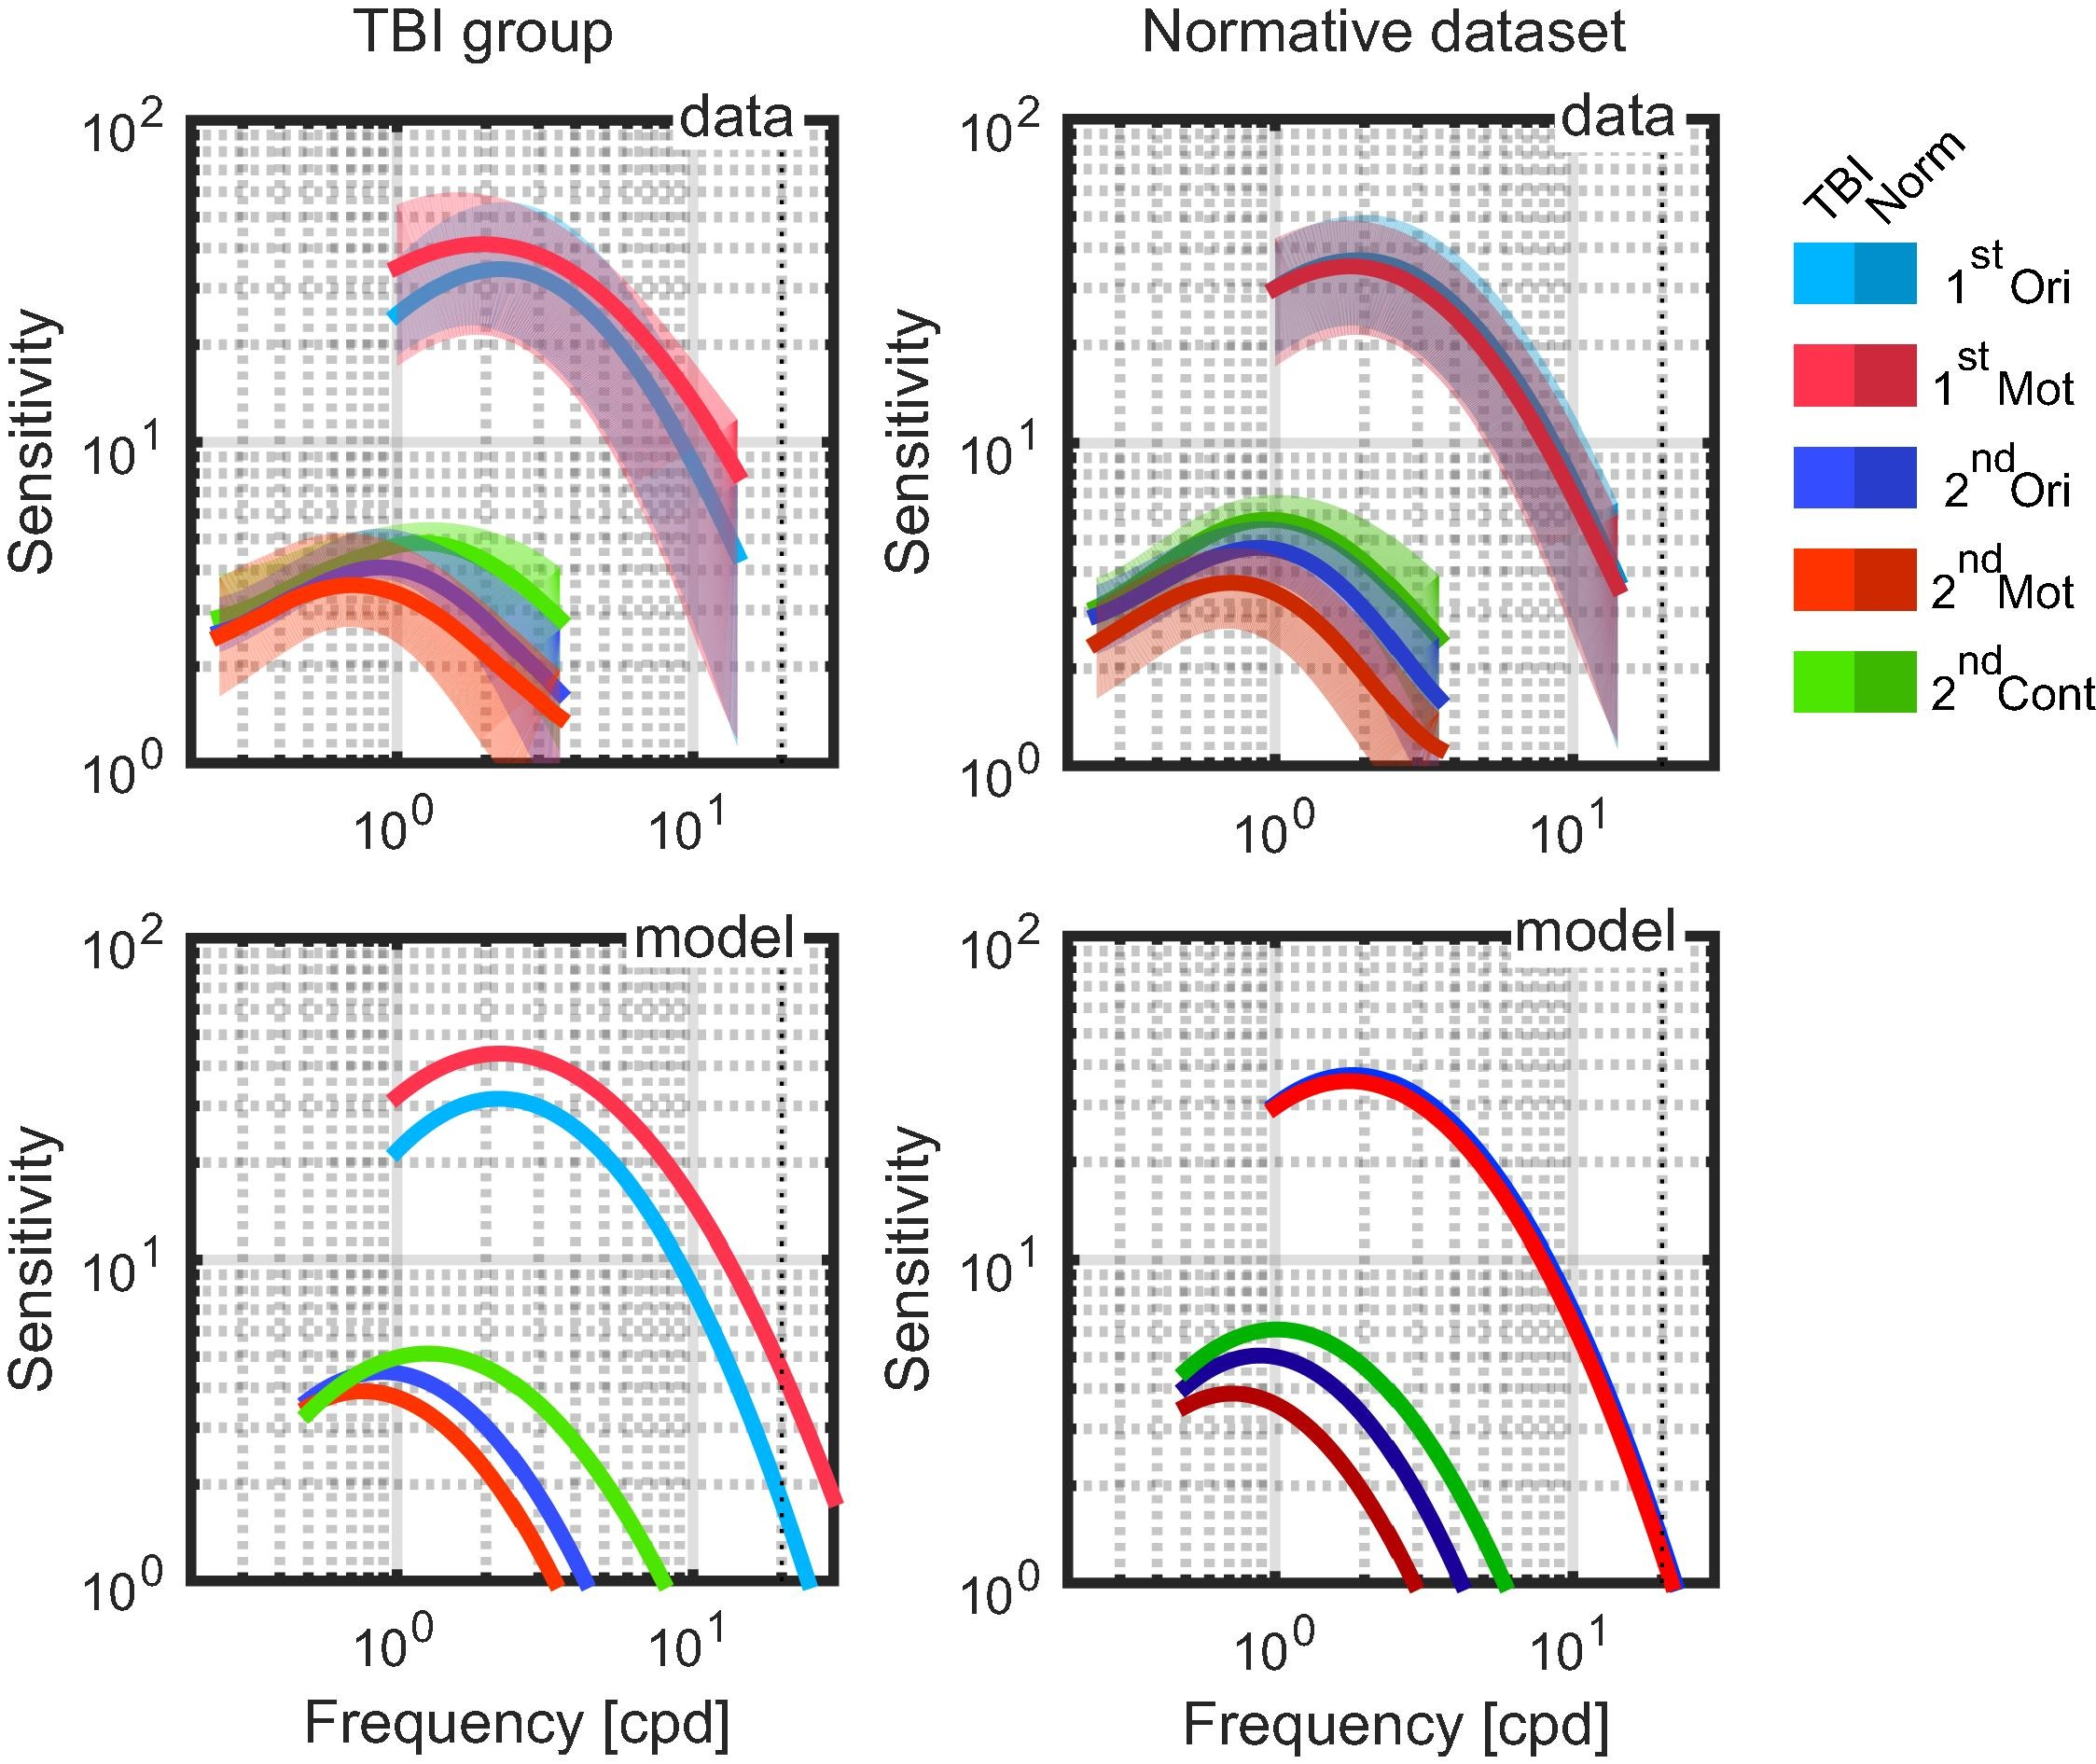 Averaged CSFs (top row) and model estimates based on the group pseudomedian estimates of qCSF parameters (bottom row). Averaged CSFs represent geometric mean with shading representing the standard deviation. Left panels TBI group; right panels normative dataset. cpd = cycles per degree. 1st Ori – 1st order orientation, 1st Mot – 1st order motion, 2nd Ori – 2nd order orientation modulation, 2nd Mot – 2nd order motion modulation, 2nd Cont – 2nd order contrast modulation.